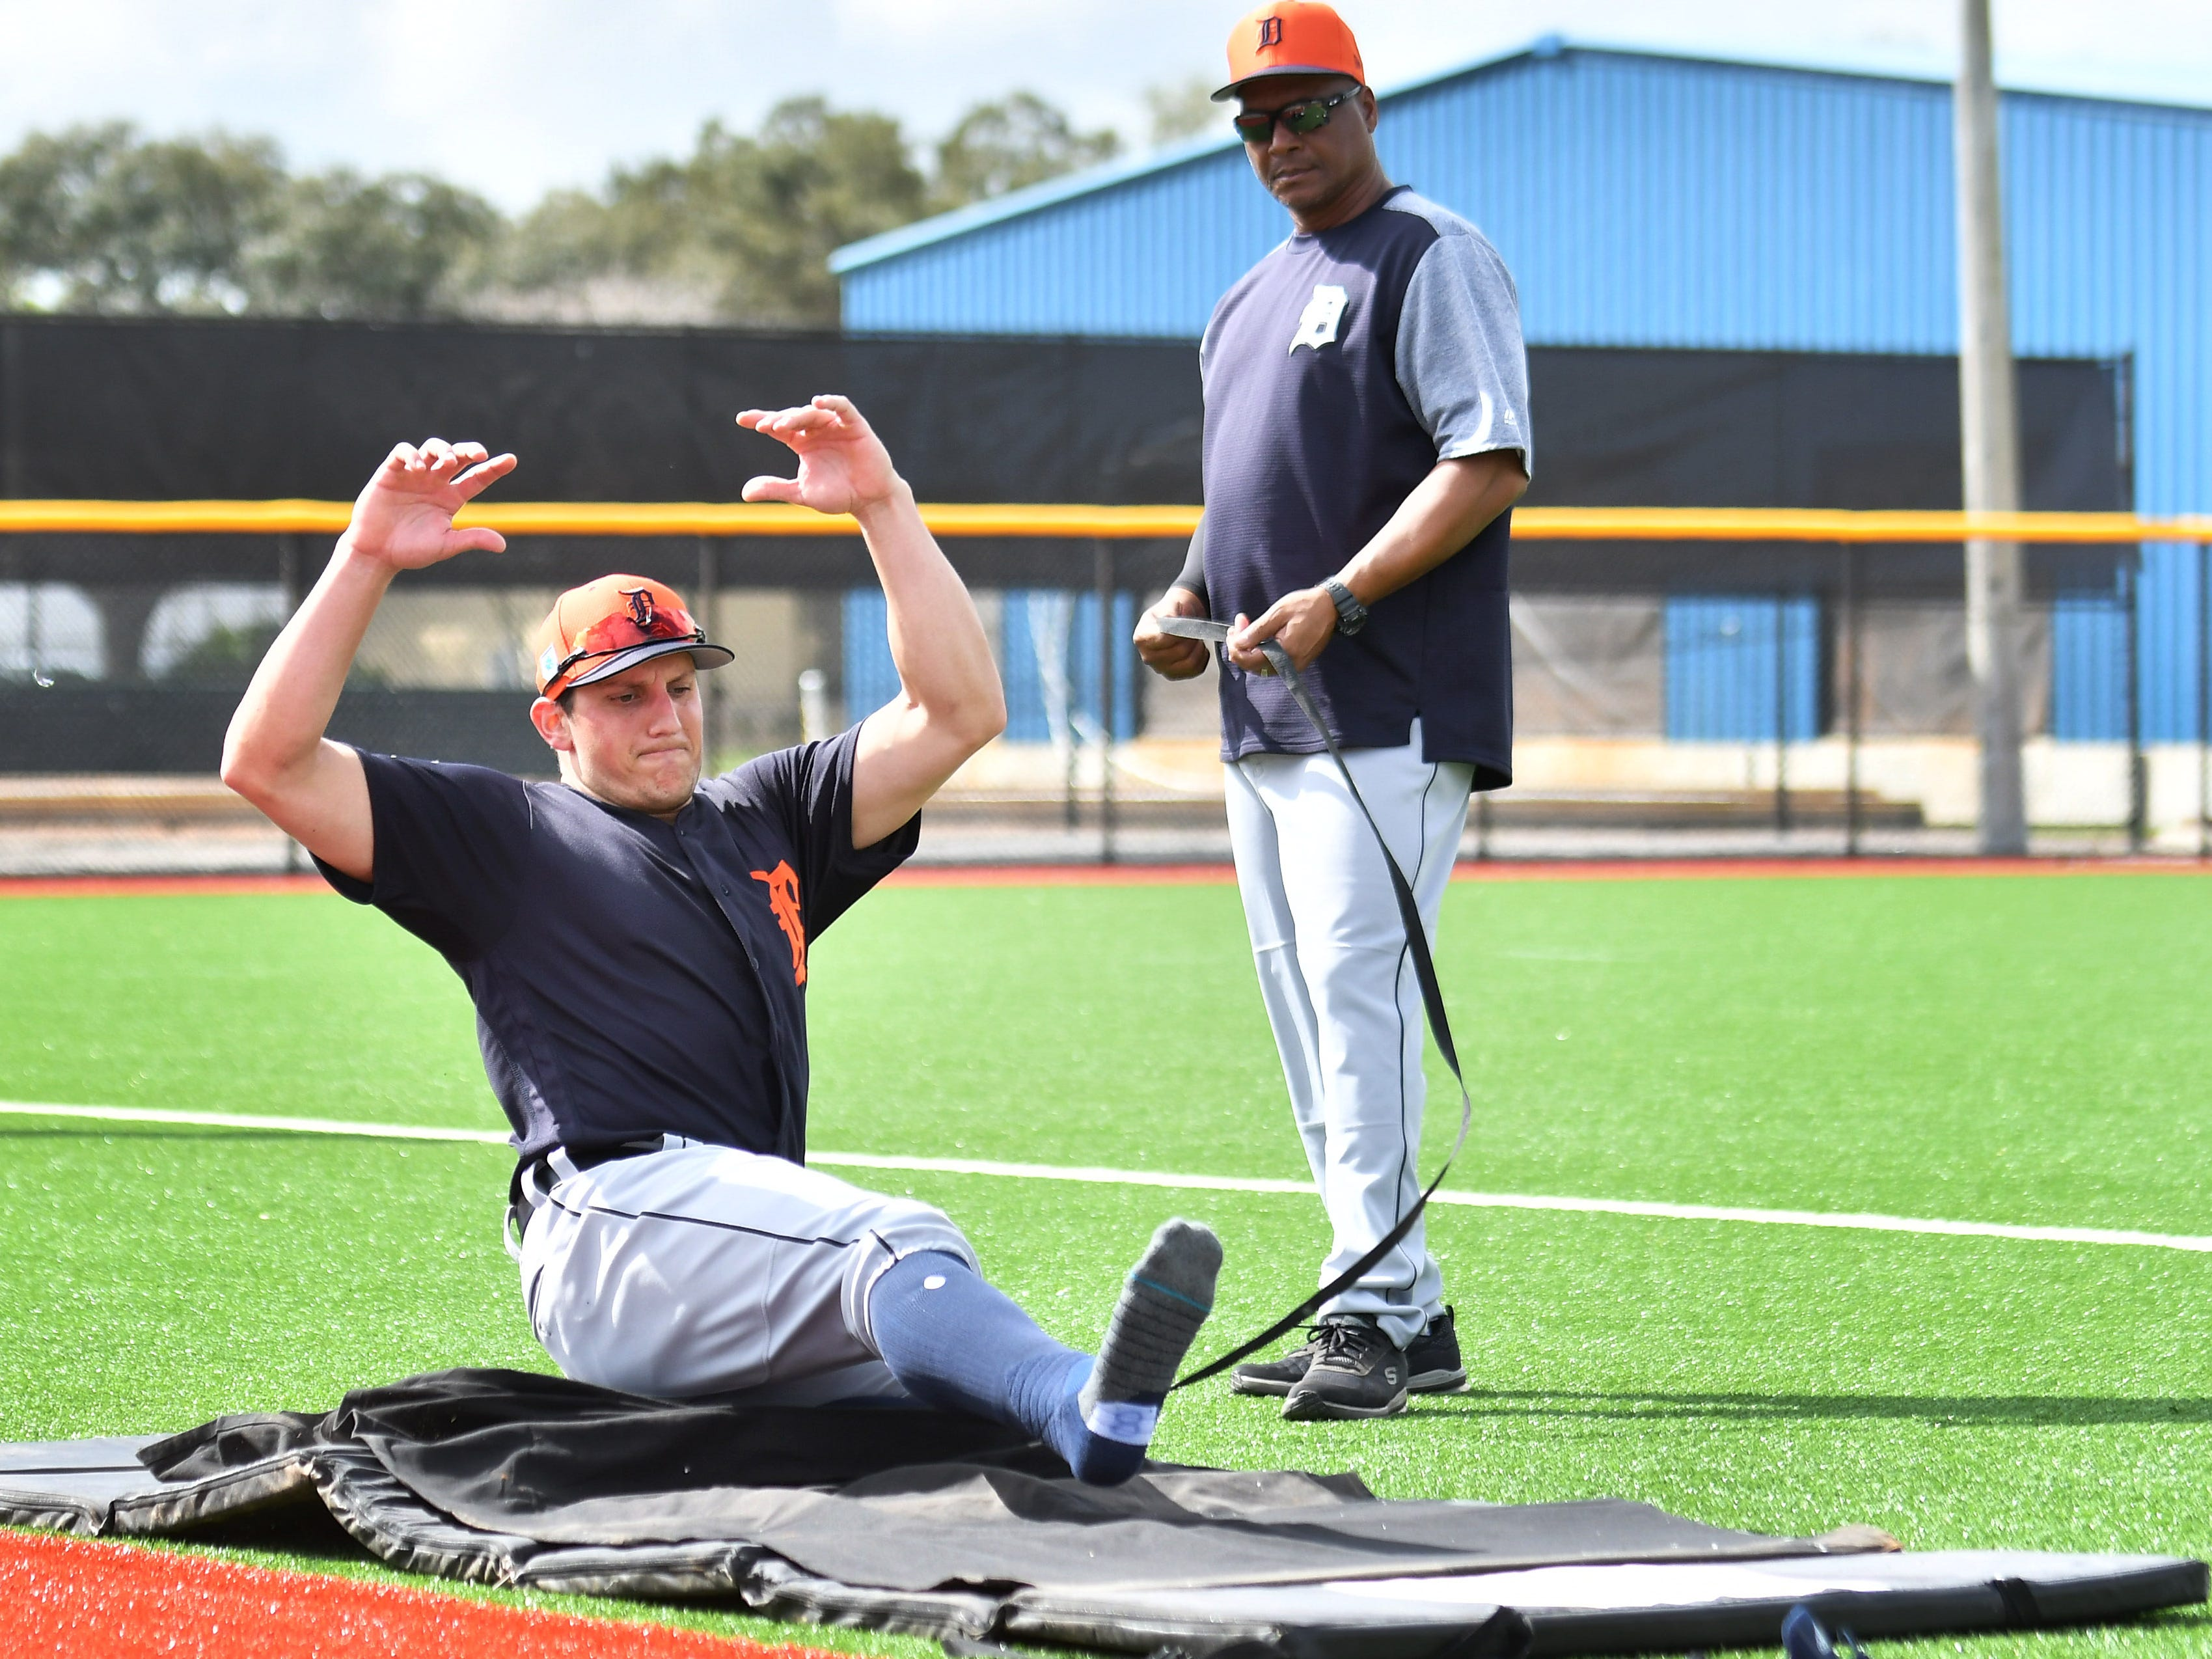 Tigers outfielder Mikie Mahtook practices sliding on a training mat.